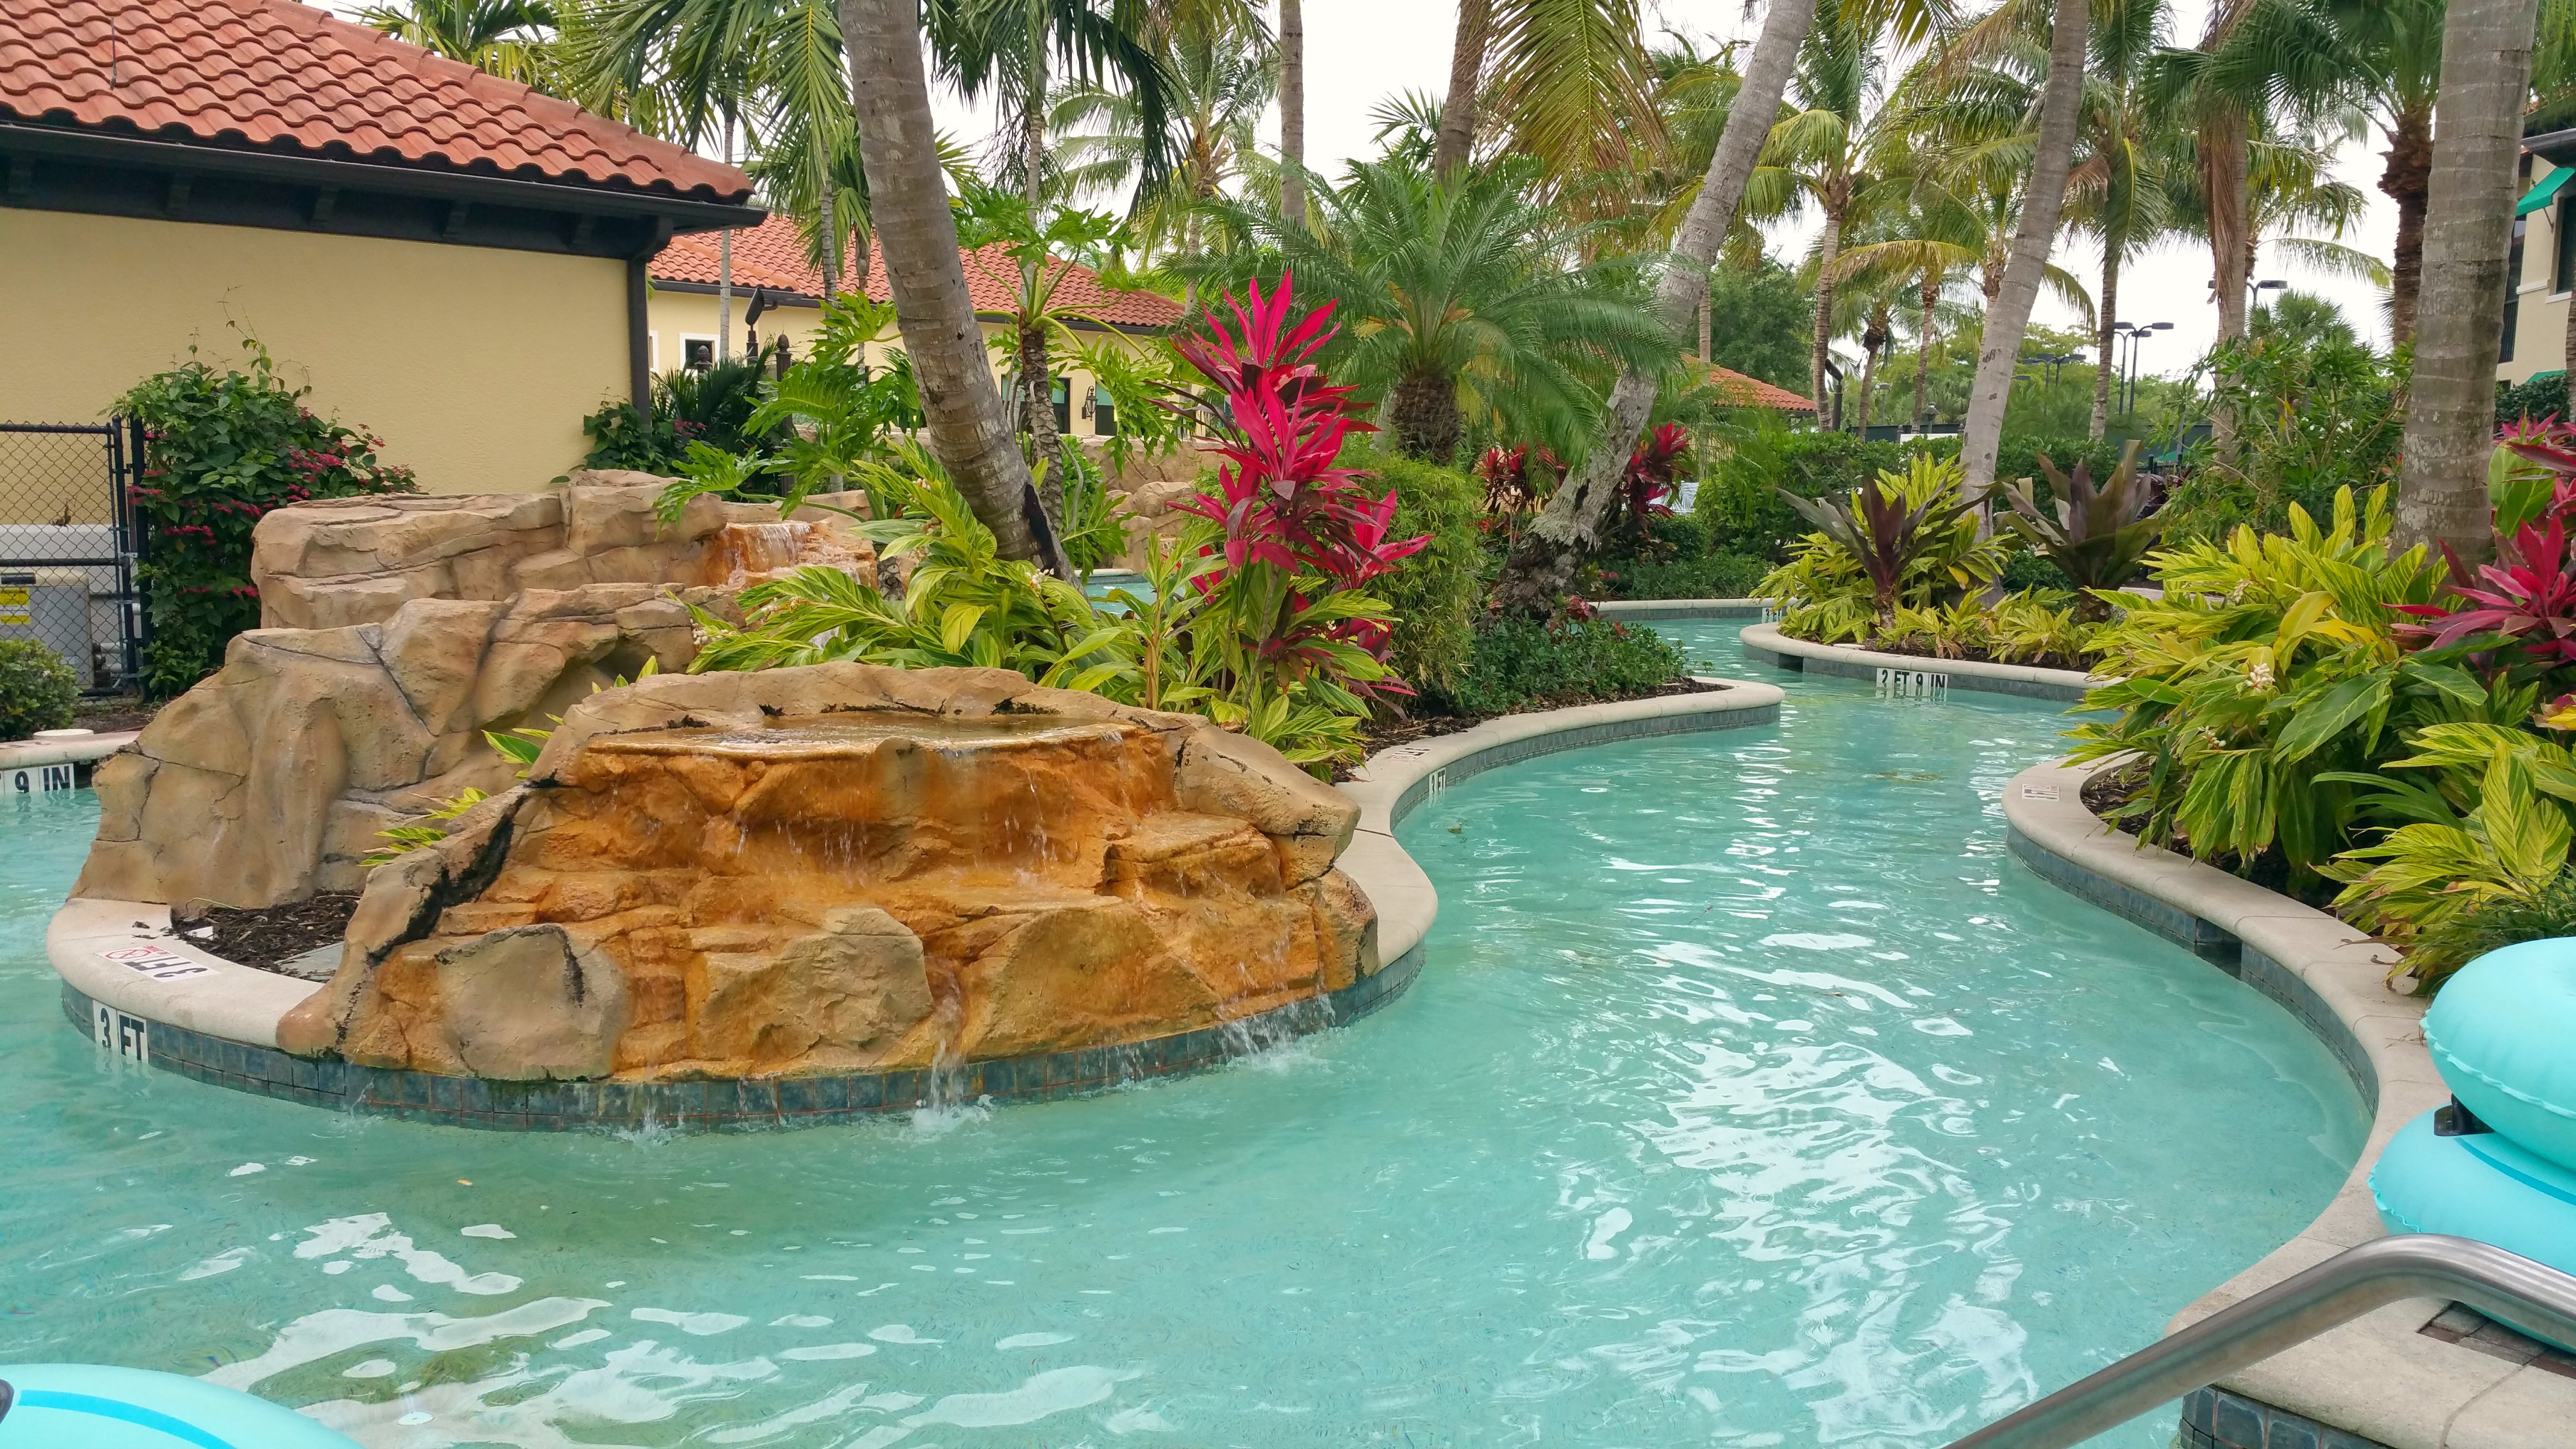 Family Friendly Florida Naples Bay Resort Review It 39 S A Lovely Life